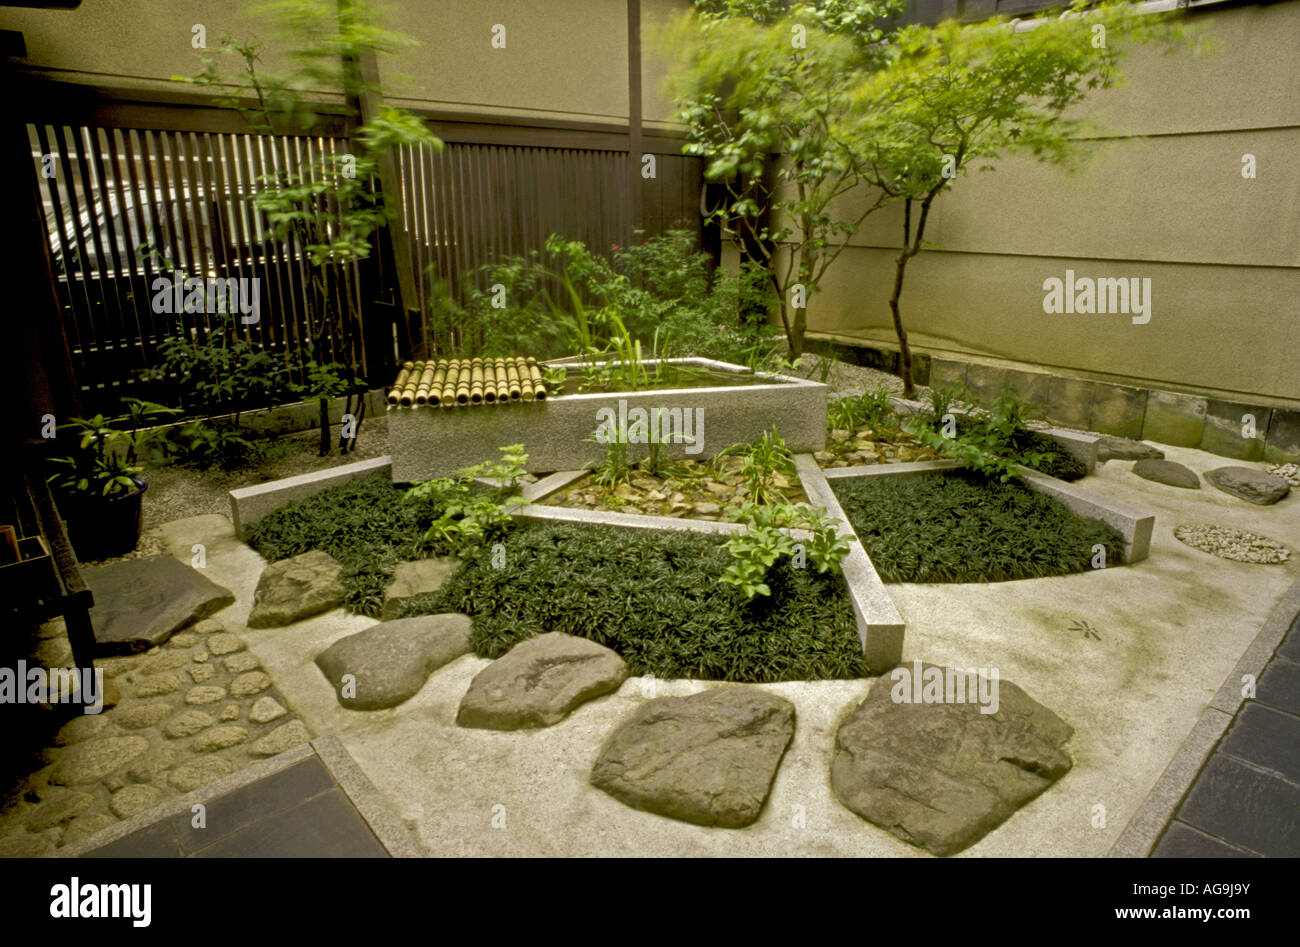 Garden Tsuboniwa Bamboo In Machiya House Kyoto Japan Stock